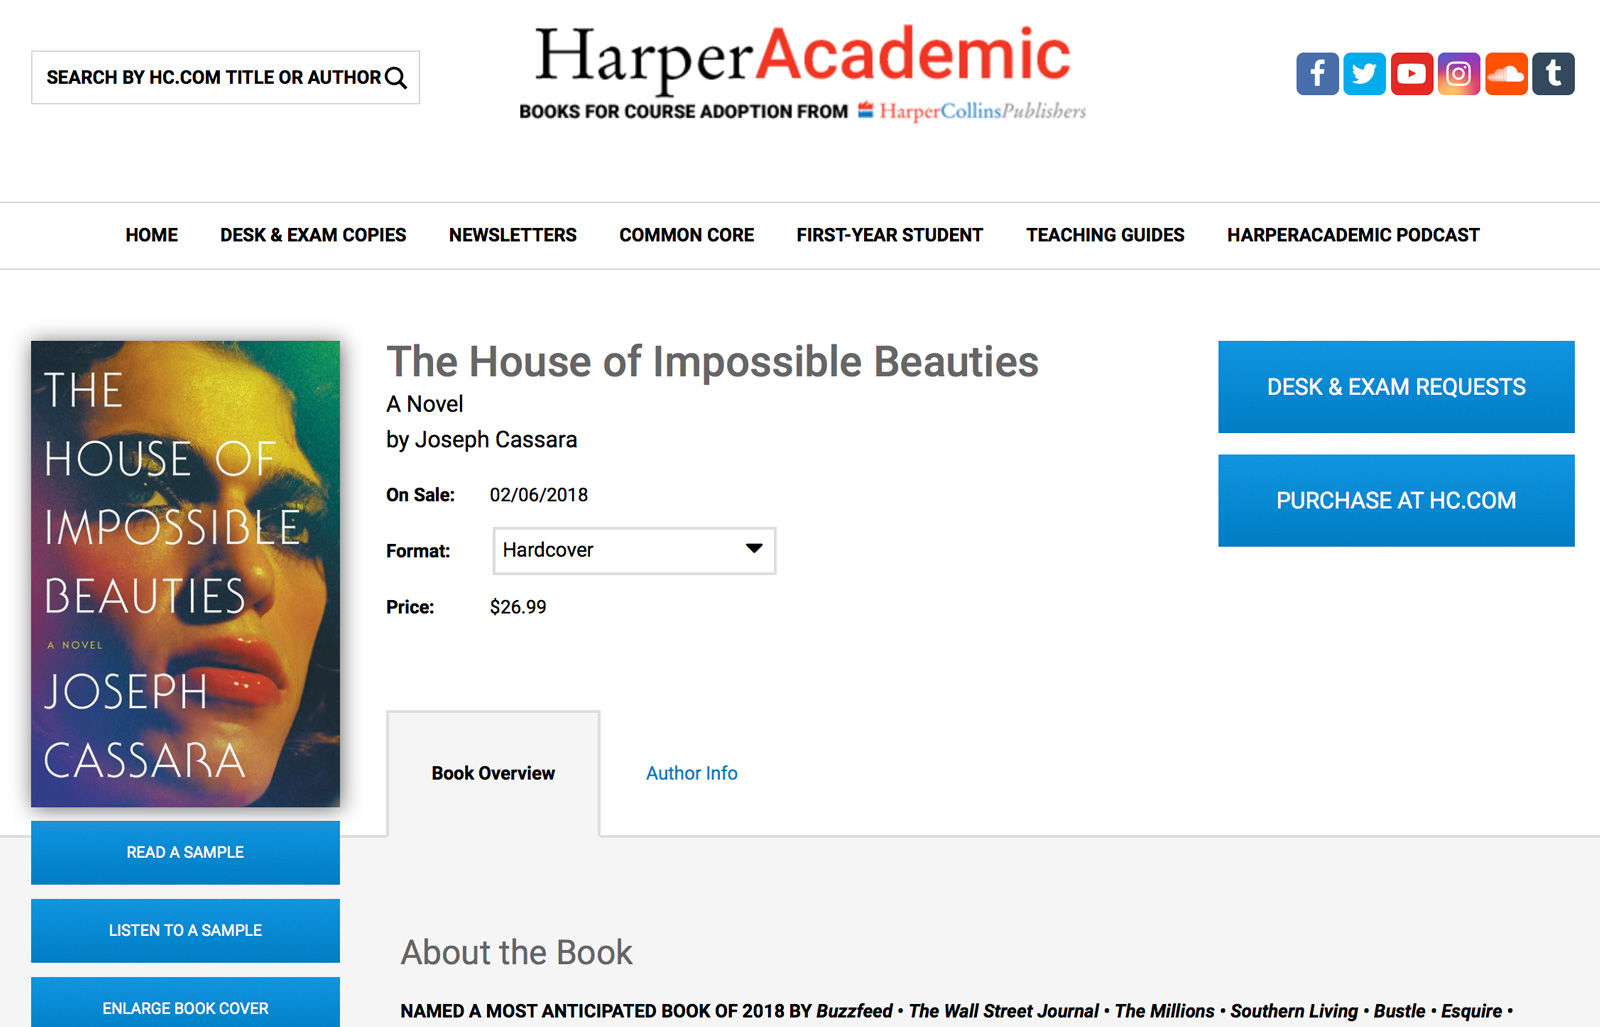 Freedom and flexibility – HarperAcademic relishes Supafolio & launches new website